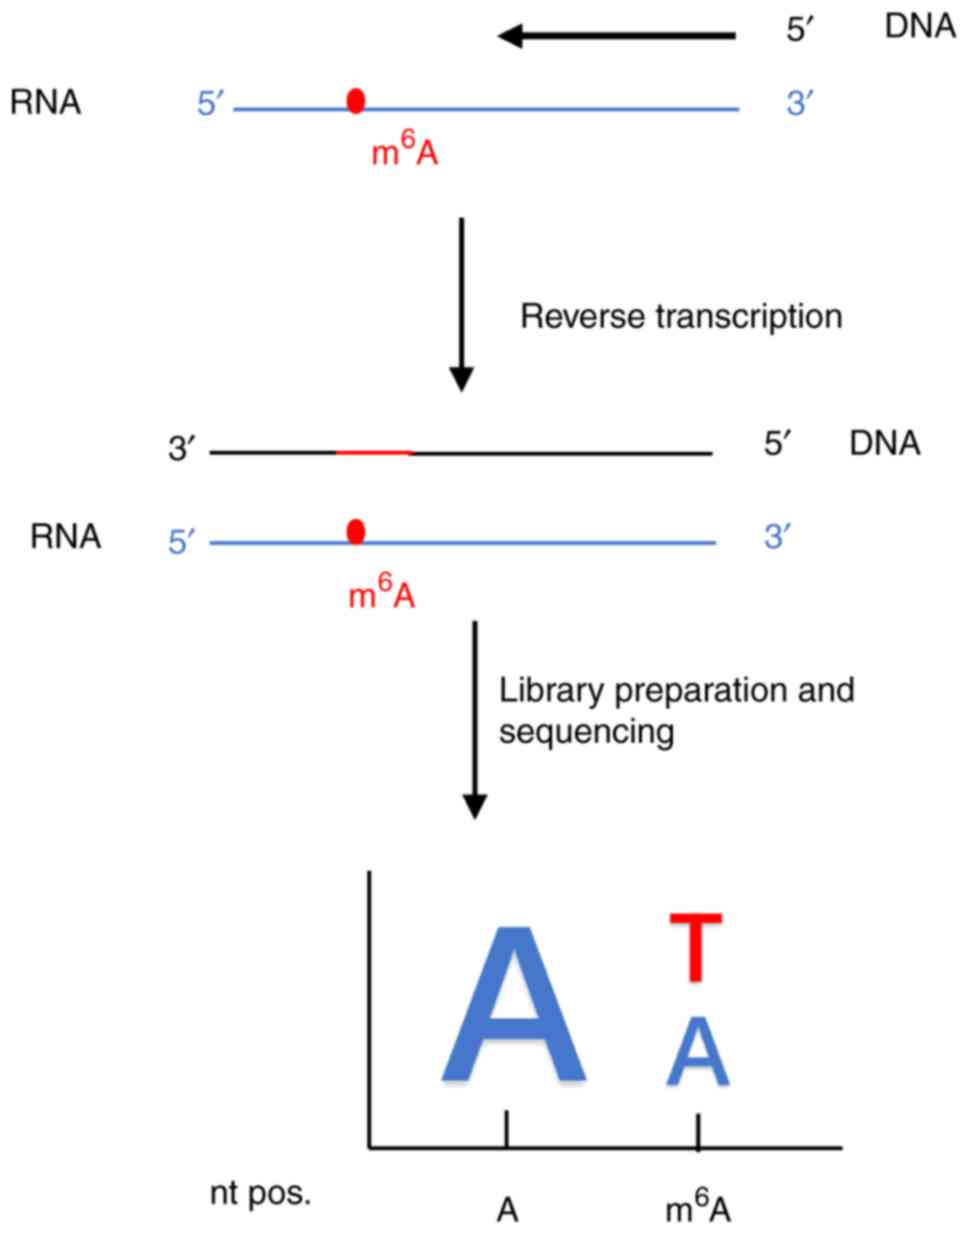 medium resolution of schematic diagram of a dna polymerase for direct m6a sequencing this is based on the reverse transcriptase variants exhibiting rt signatures as a response